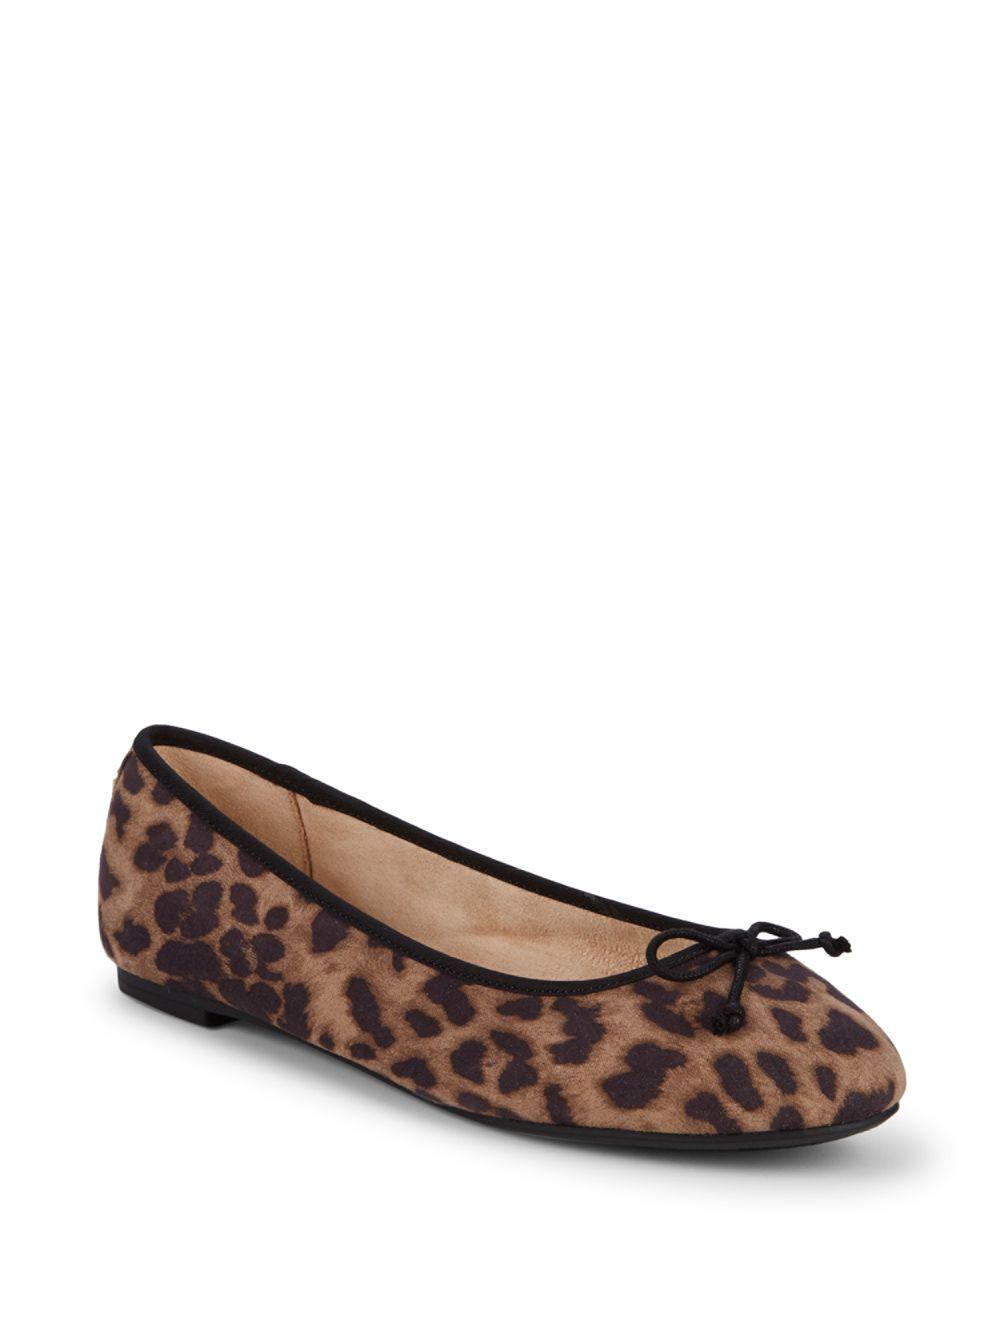 1b7fbec42 Lyst - Circus by Sam Edelman Charlotte Leopard Ballet Flats in Brown